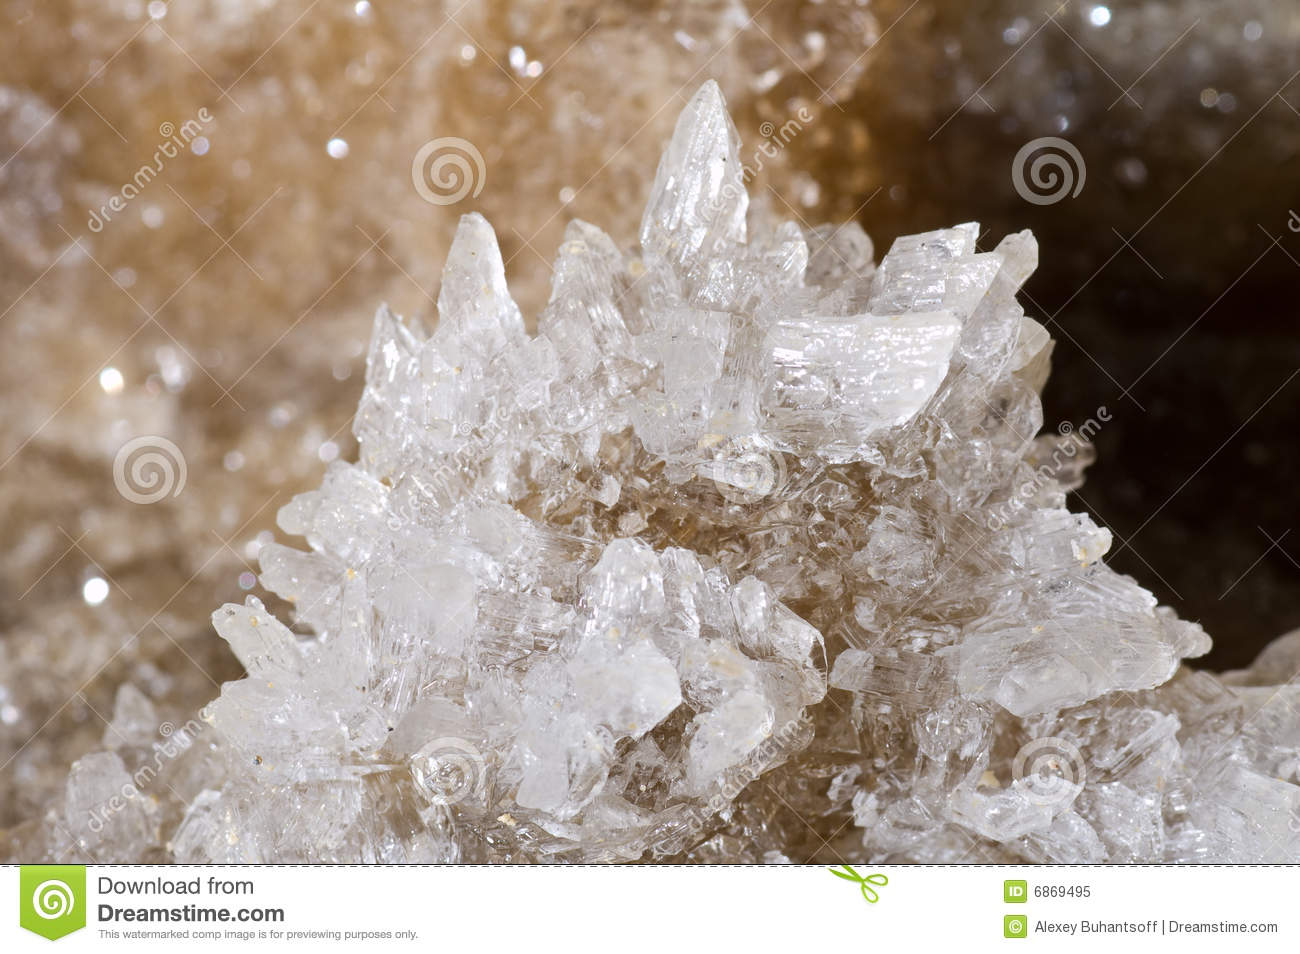 Crystals of gypsum